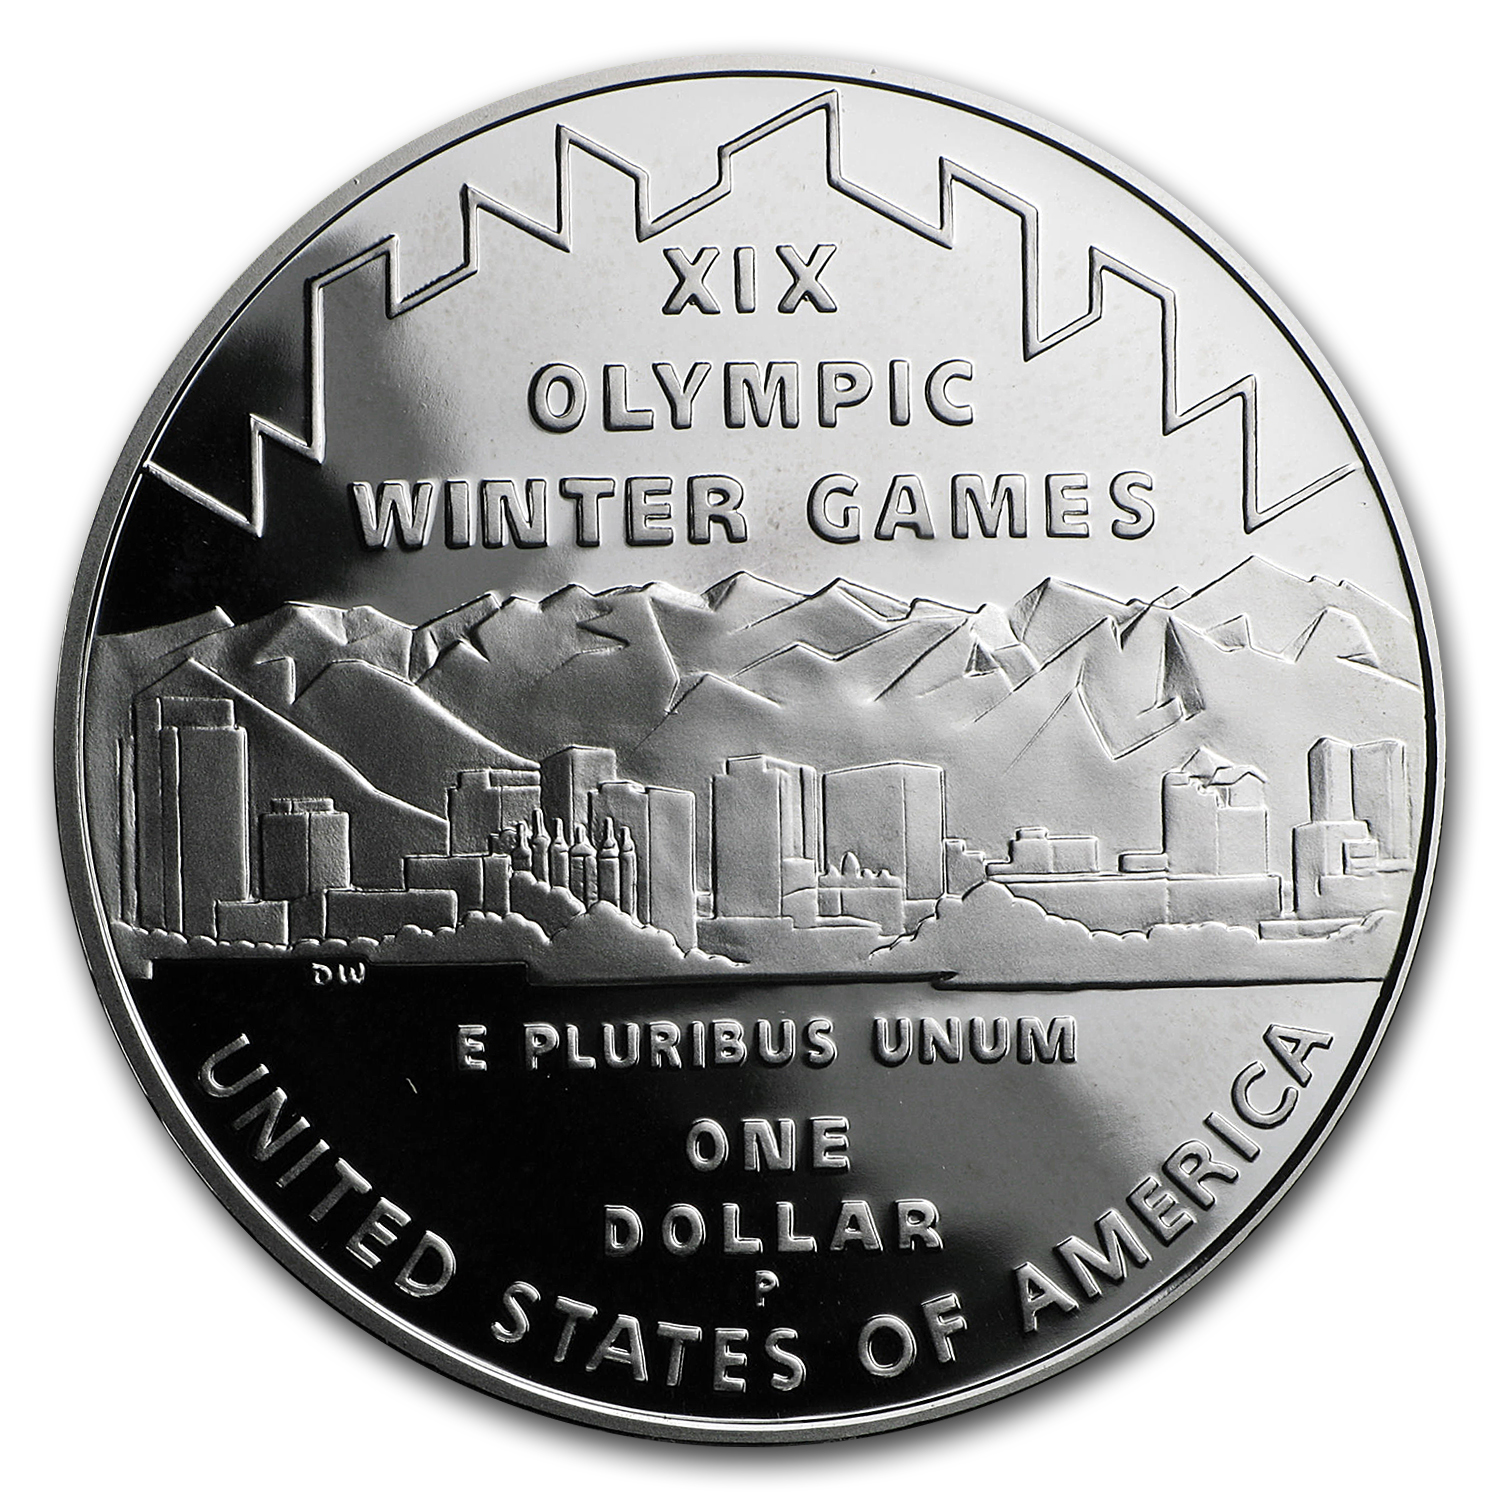 2002-P 2-Coin Commem Olympic Winter Games Proof Set (w/Box & COA)